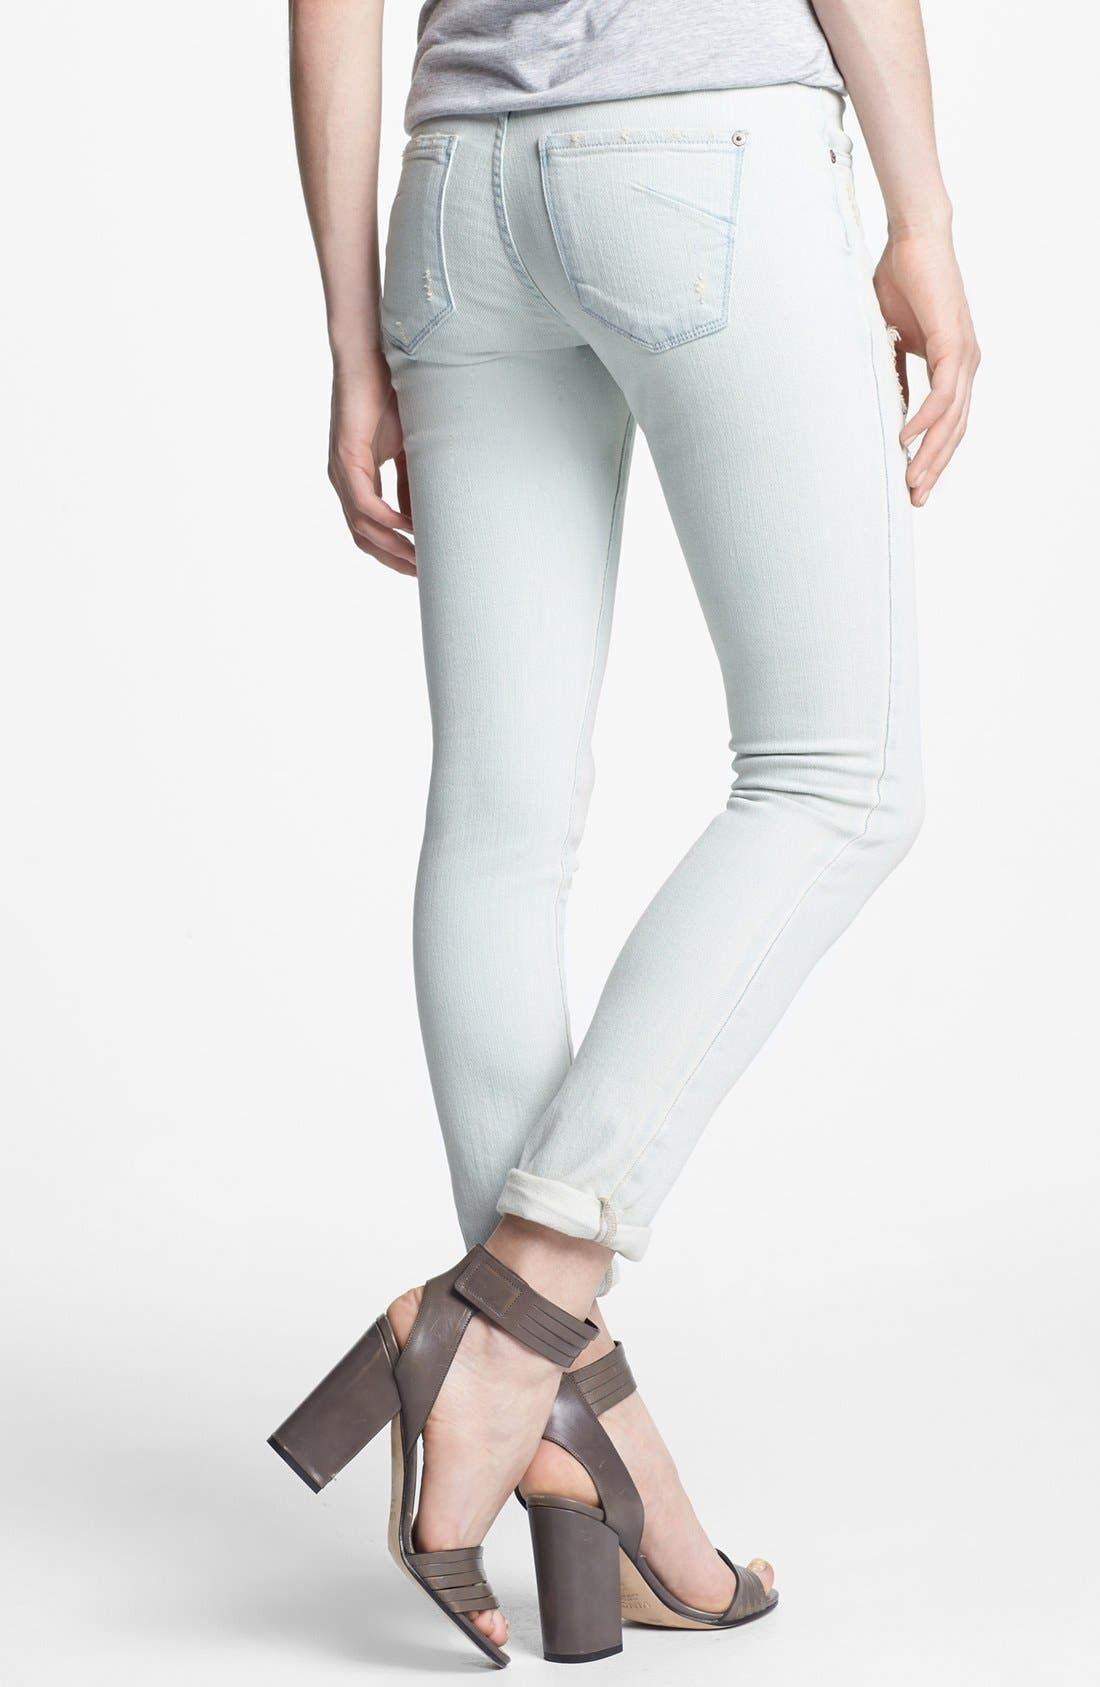 Alternate Image 2  - James Jeans 'Neo Beau' Distressed Boyfriend Jeans (Petite) (Online Only)